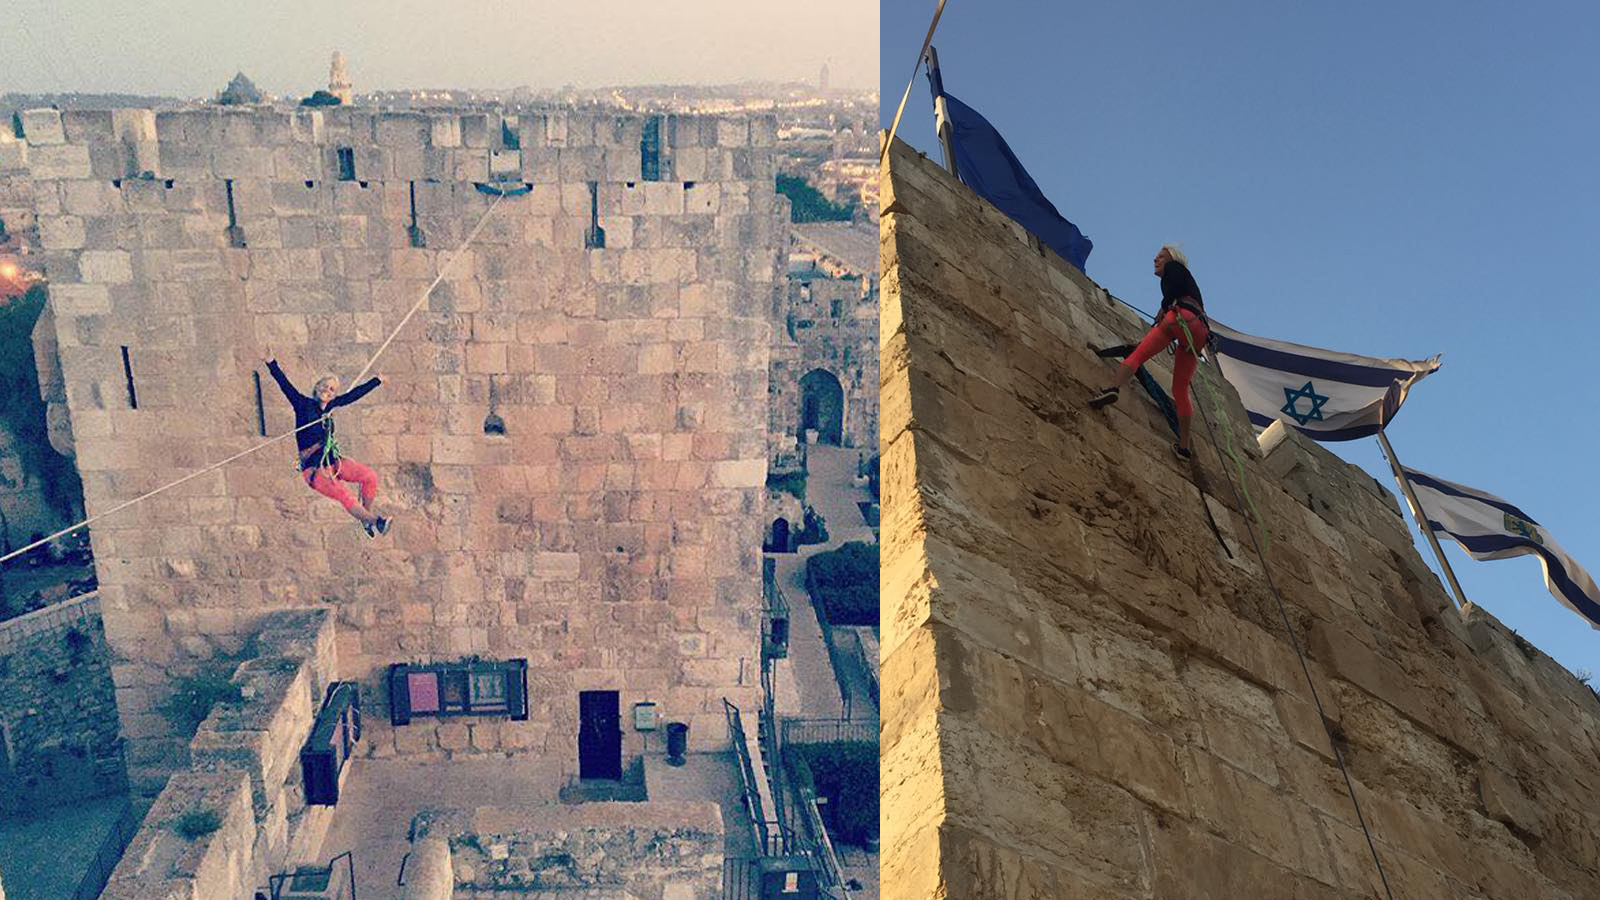 Heather Larsen, one of the top female highliners in the world, gets ready to slackline at the Tower of David. Photos via Facebook